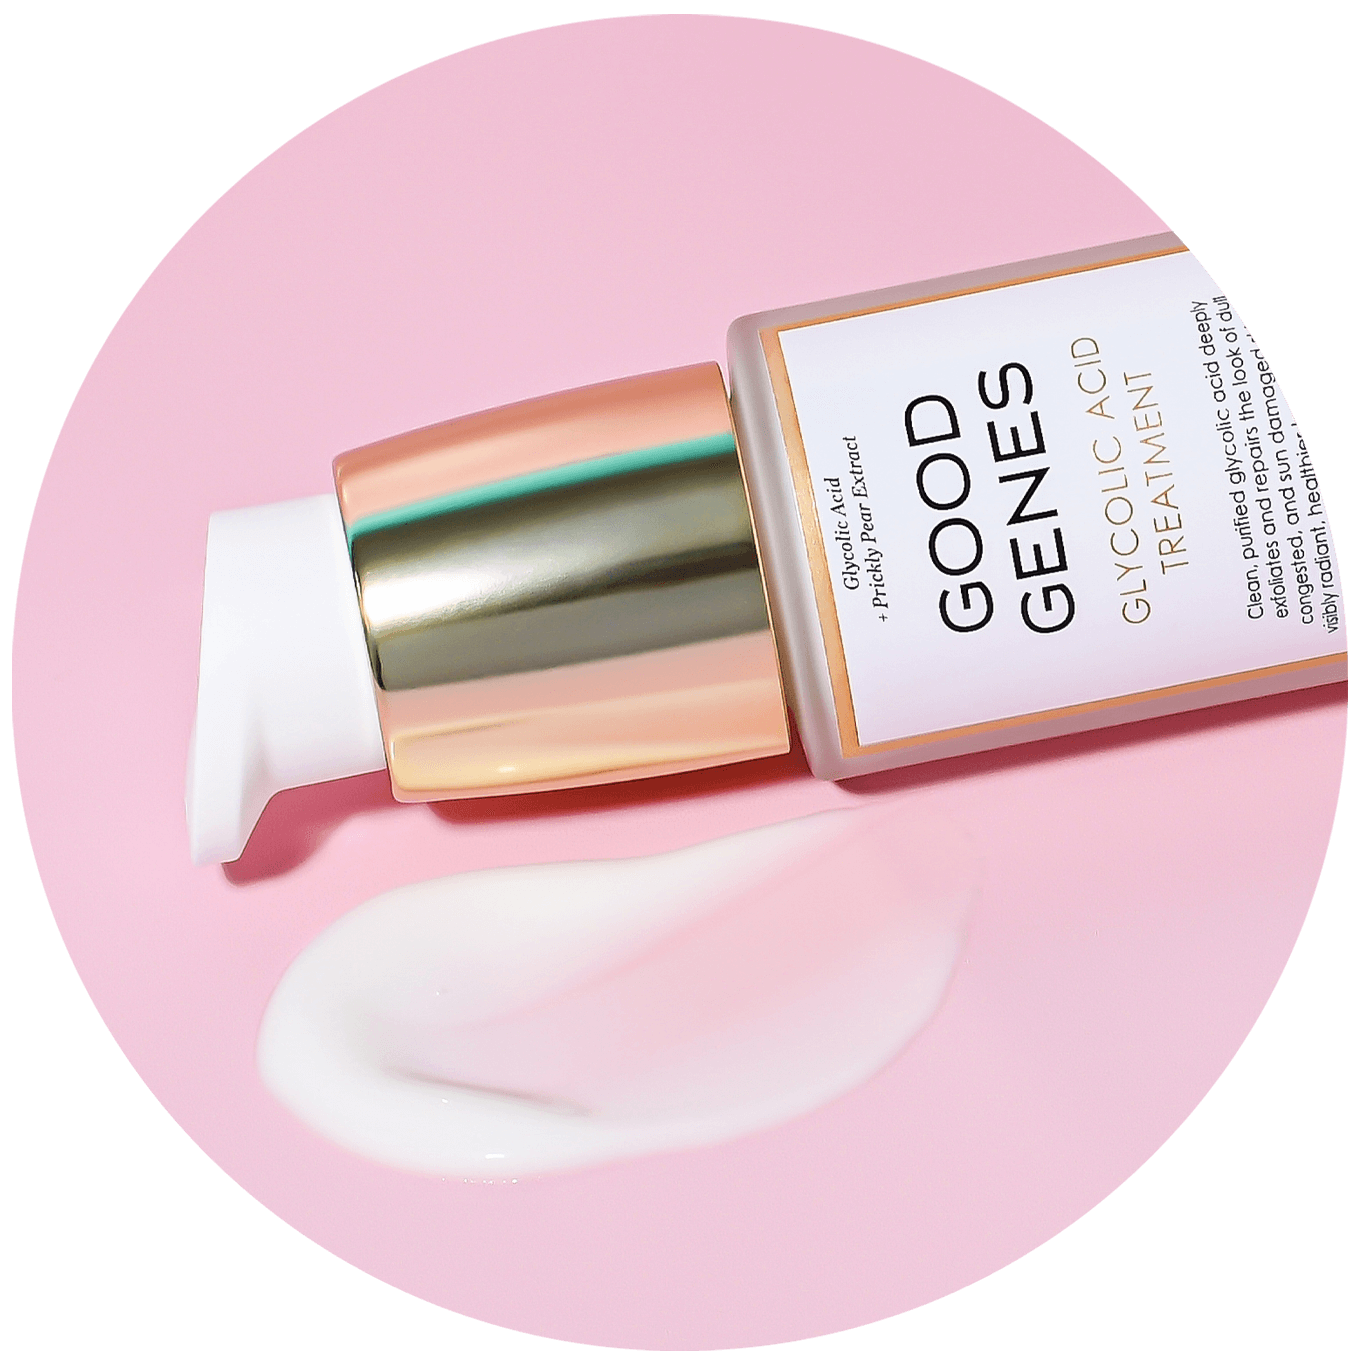 good genes glycolic acid treatment bottle with goop on pink background